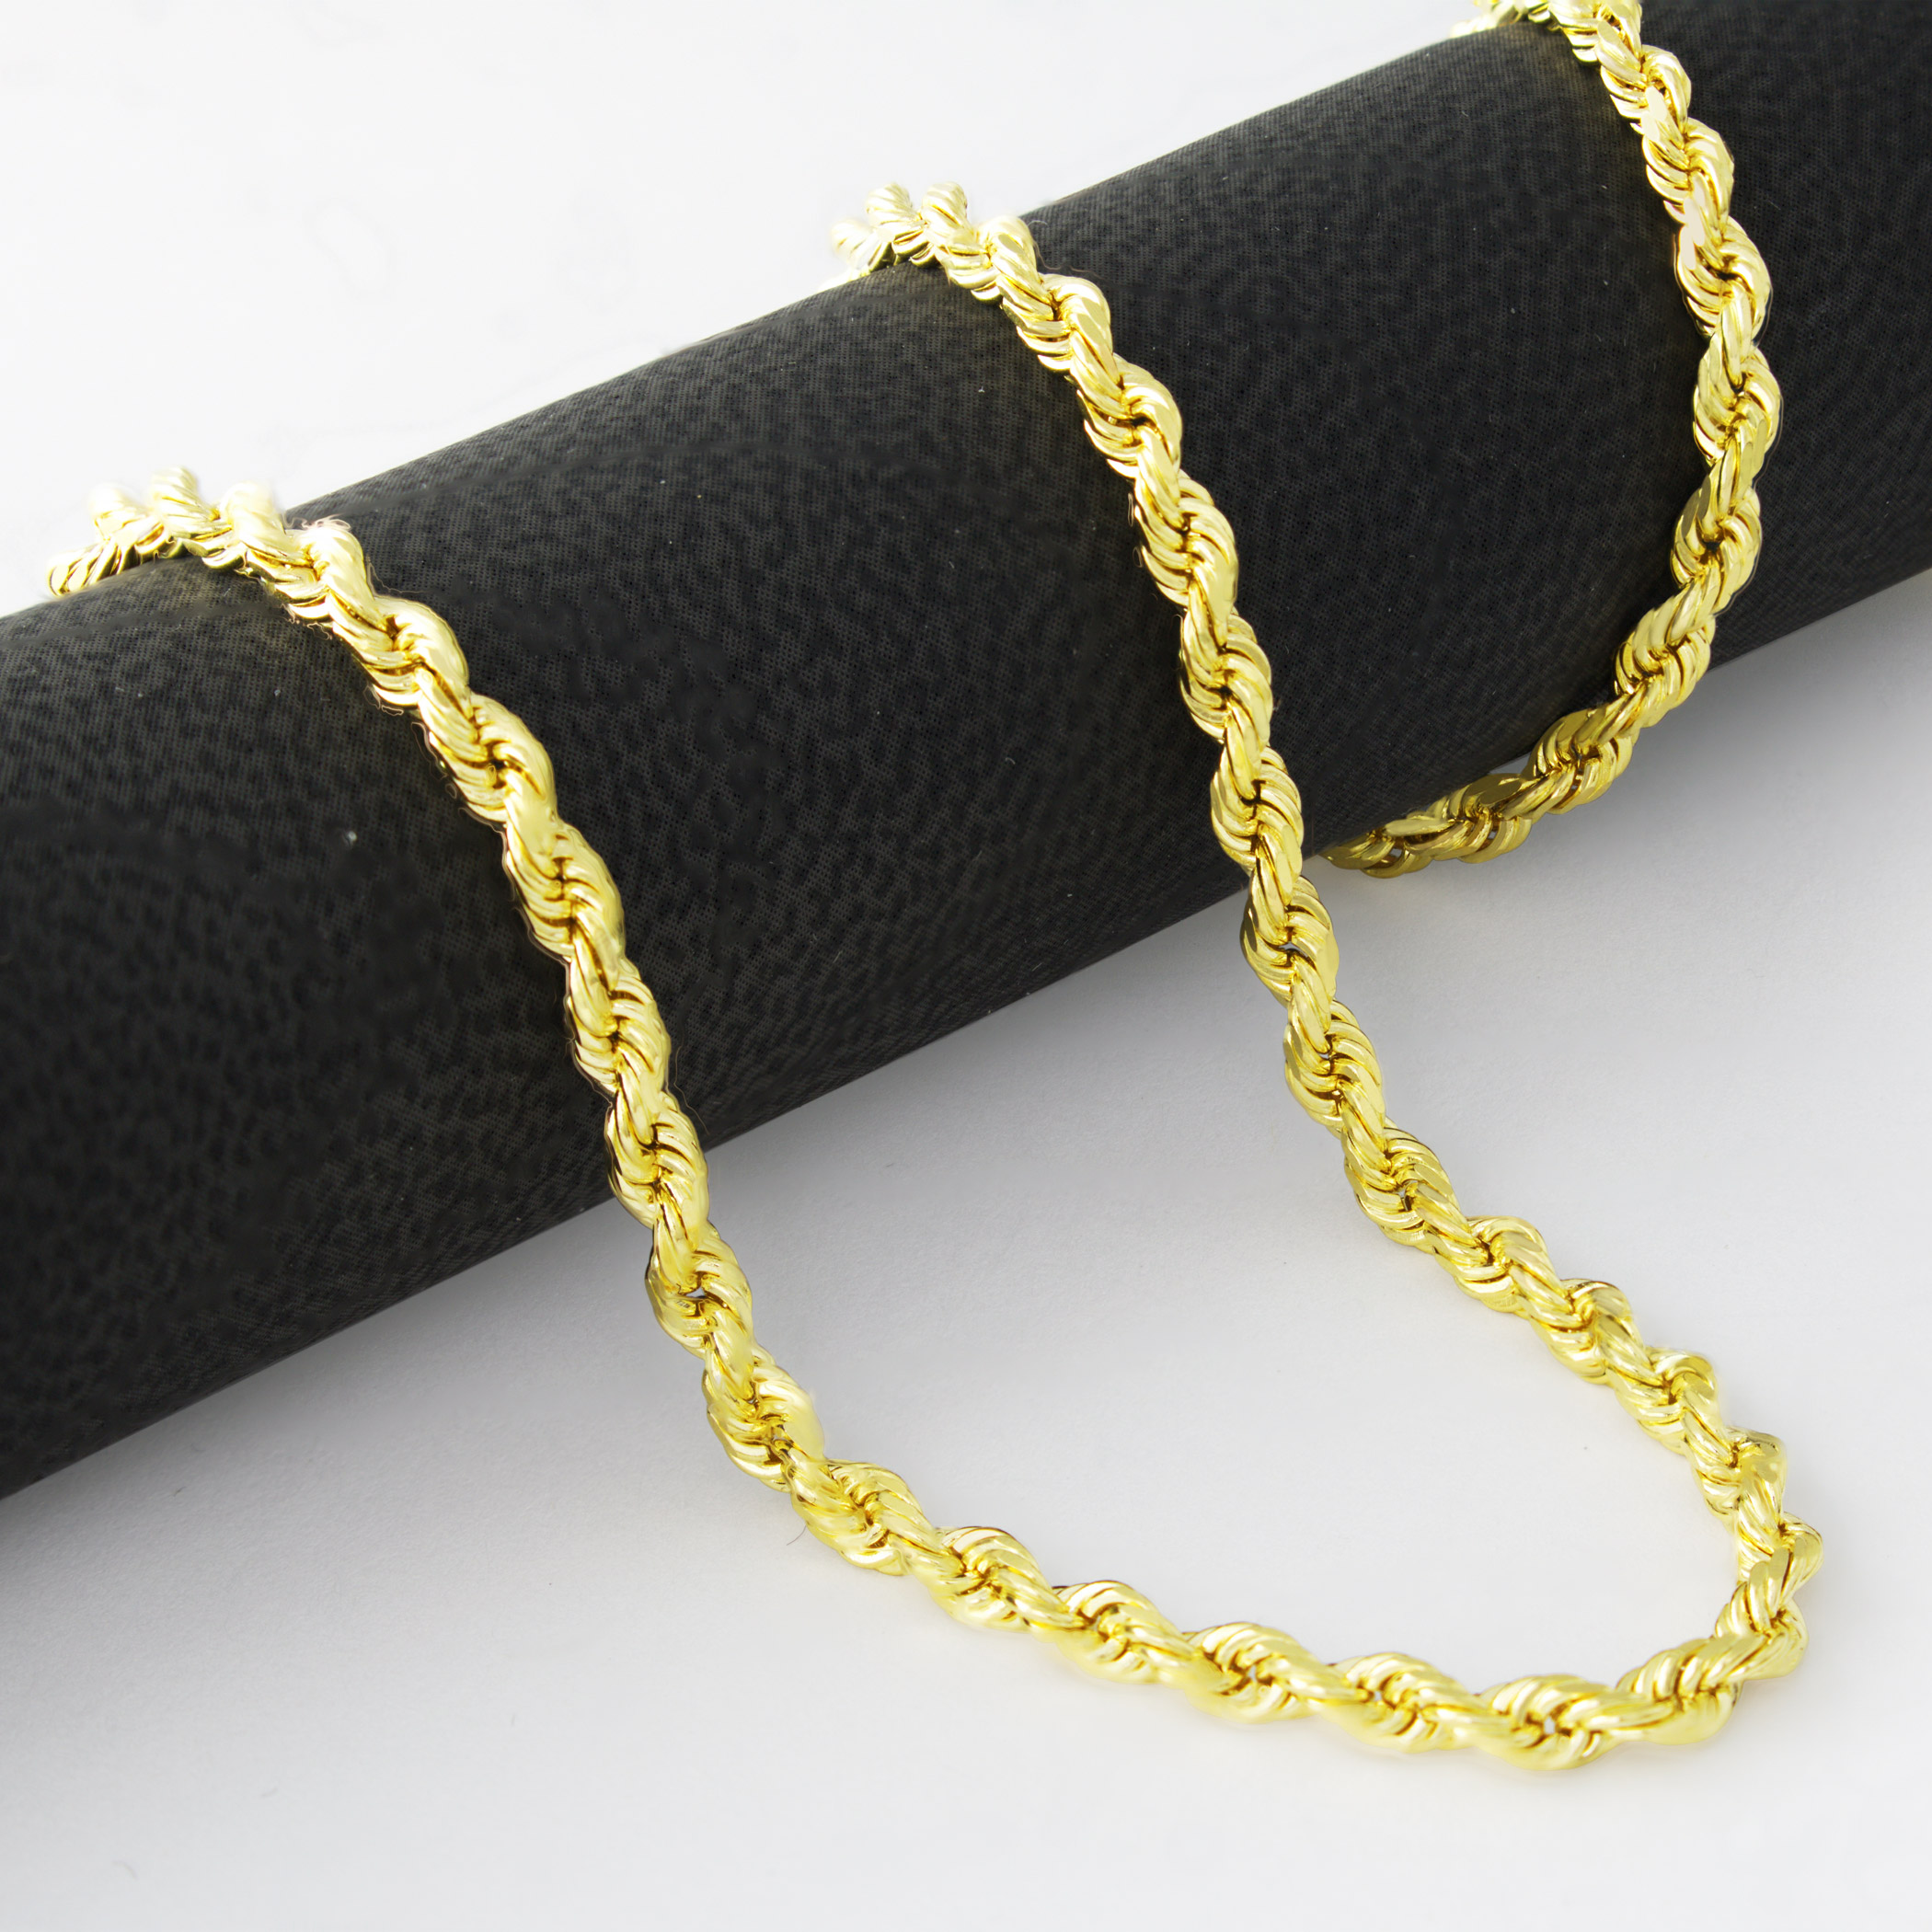 Real-14K-Yellow-Gold-3mm-Diamond-Cut-Rope-Chain-Necklace-Lobster-Clasp-18-034-30-034 thumbnail 65